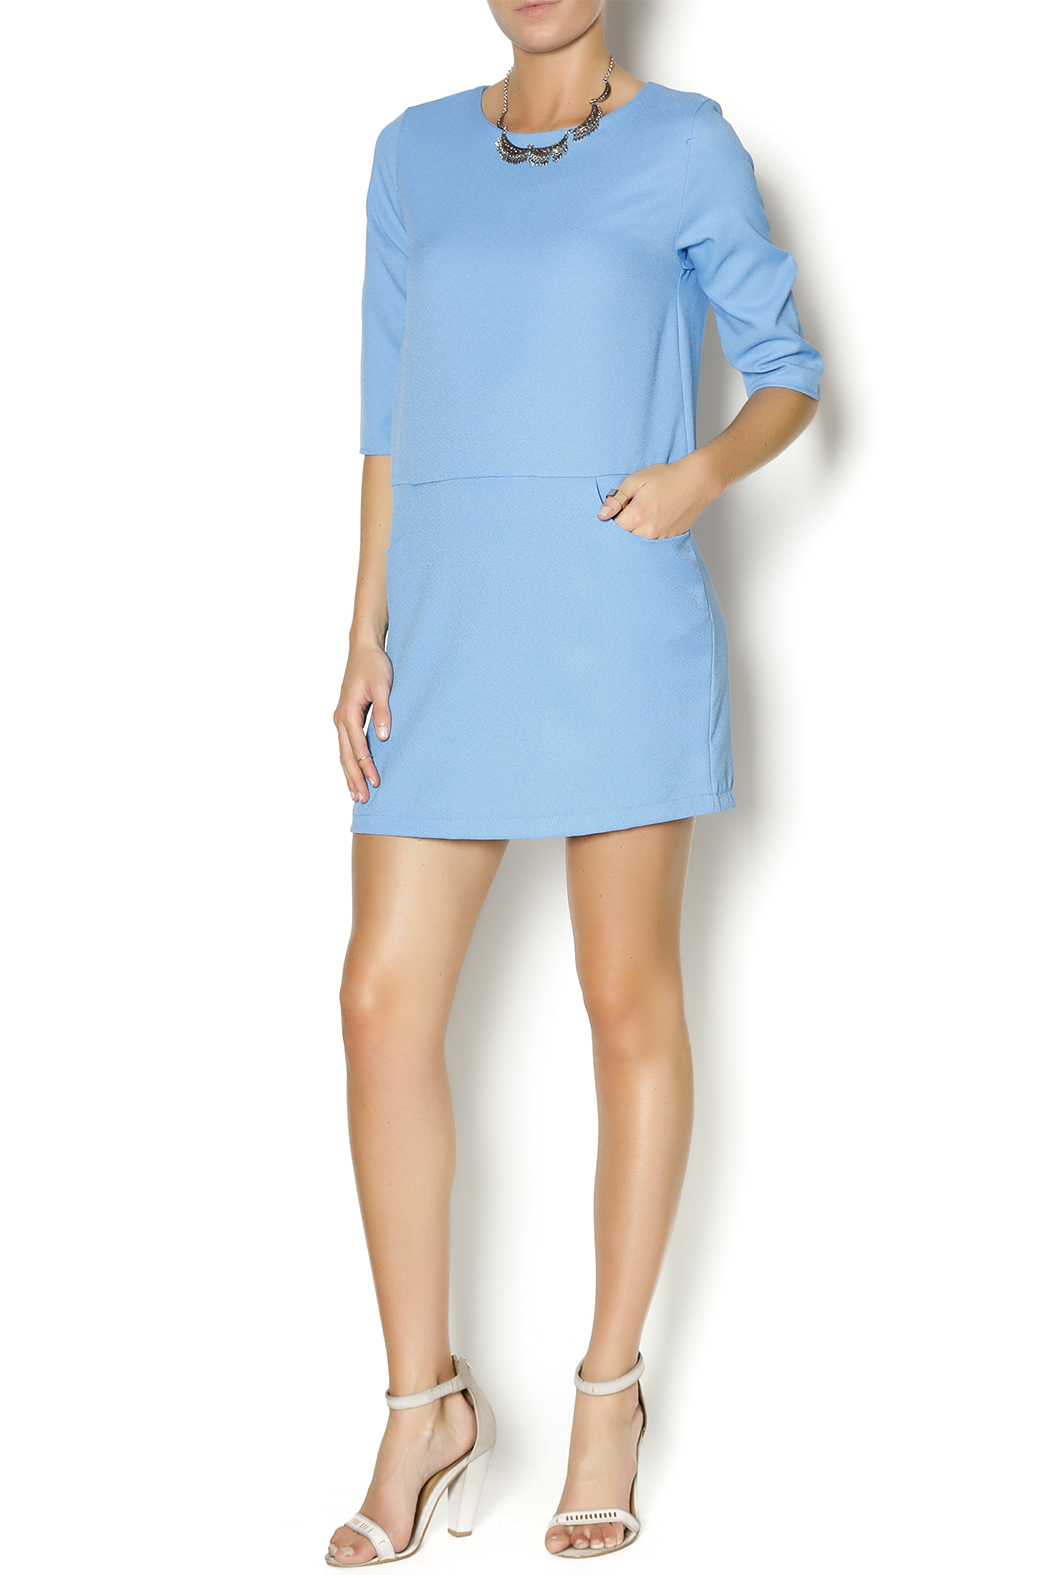 Everly Blue Shirt Dress - Front Full Image